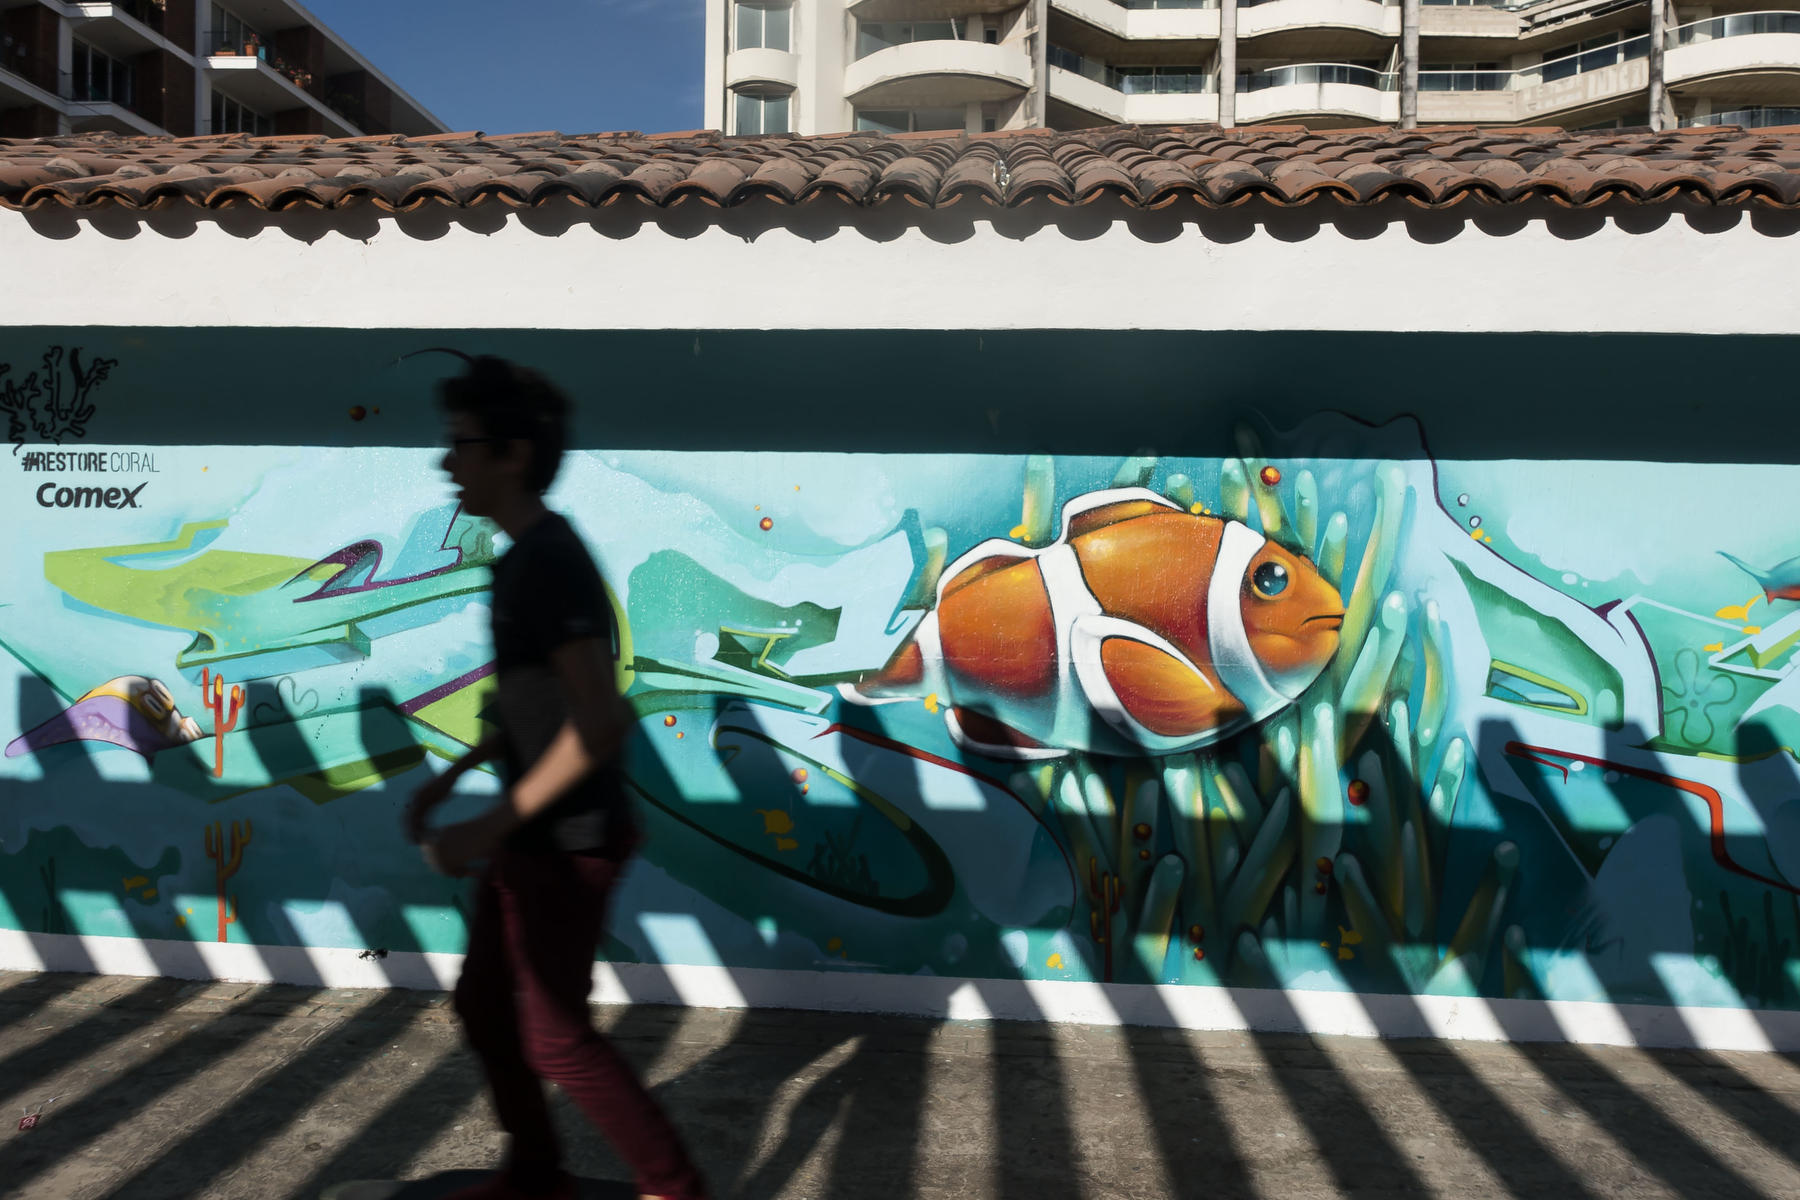 A skate boarder passes by the shadow of a fence on an underwater mural, painted as part of a Save the Reef project sponsored by a paint manufacturer : PUERTO VALLARTA - Wall Art & Bicycle Tour : Viviane Moos |  Documentary Photographer